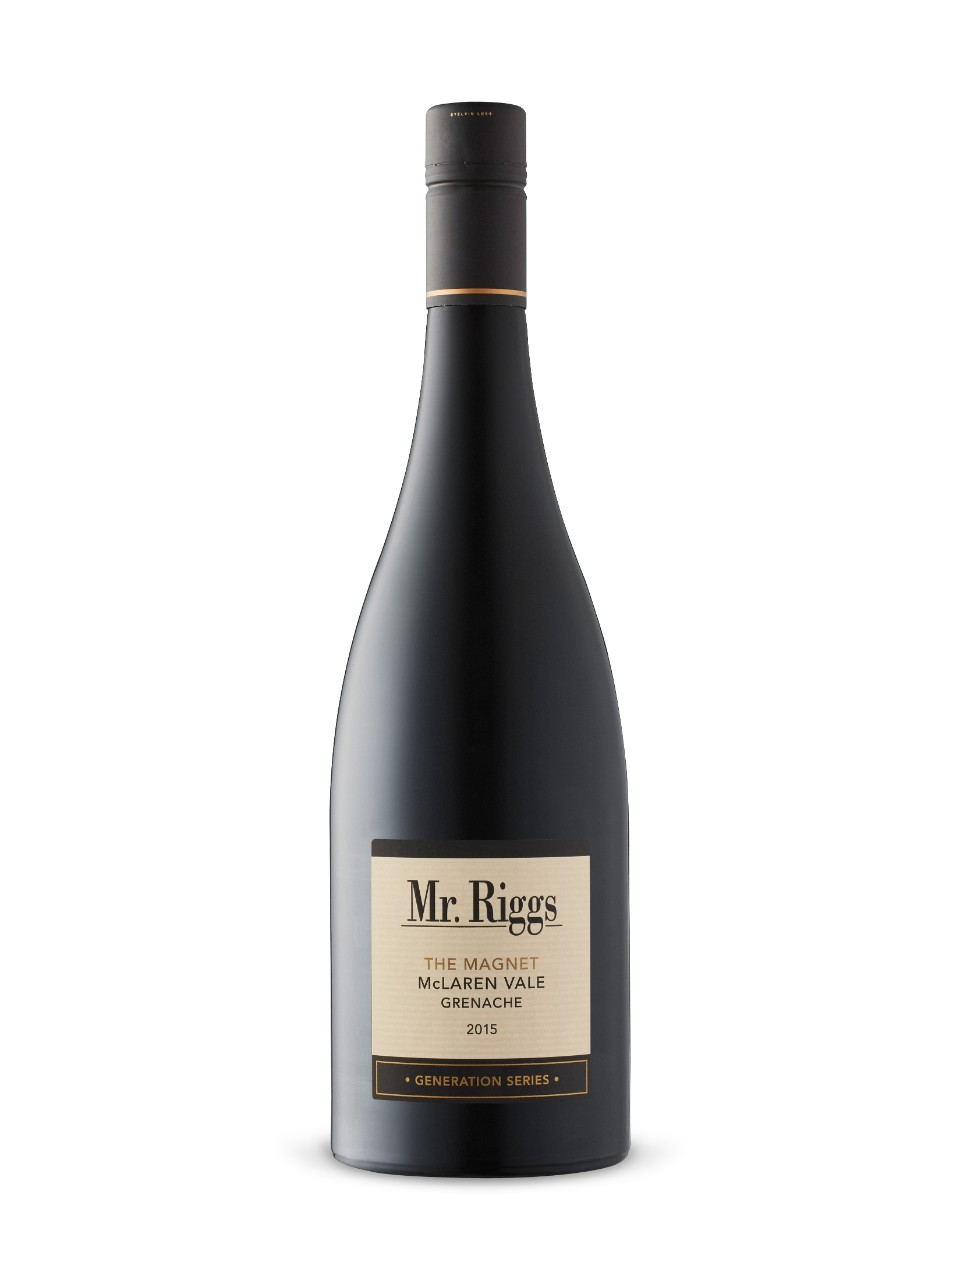 Grenache The Magnet Generation Series Mr. Riggs 2015